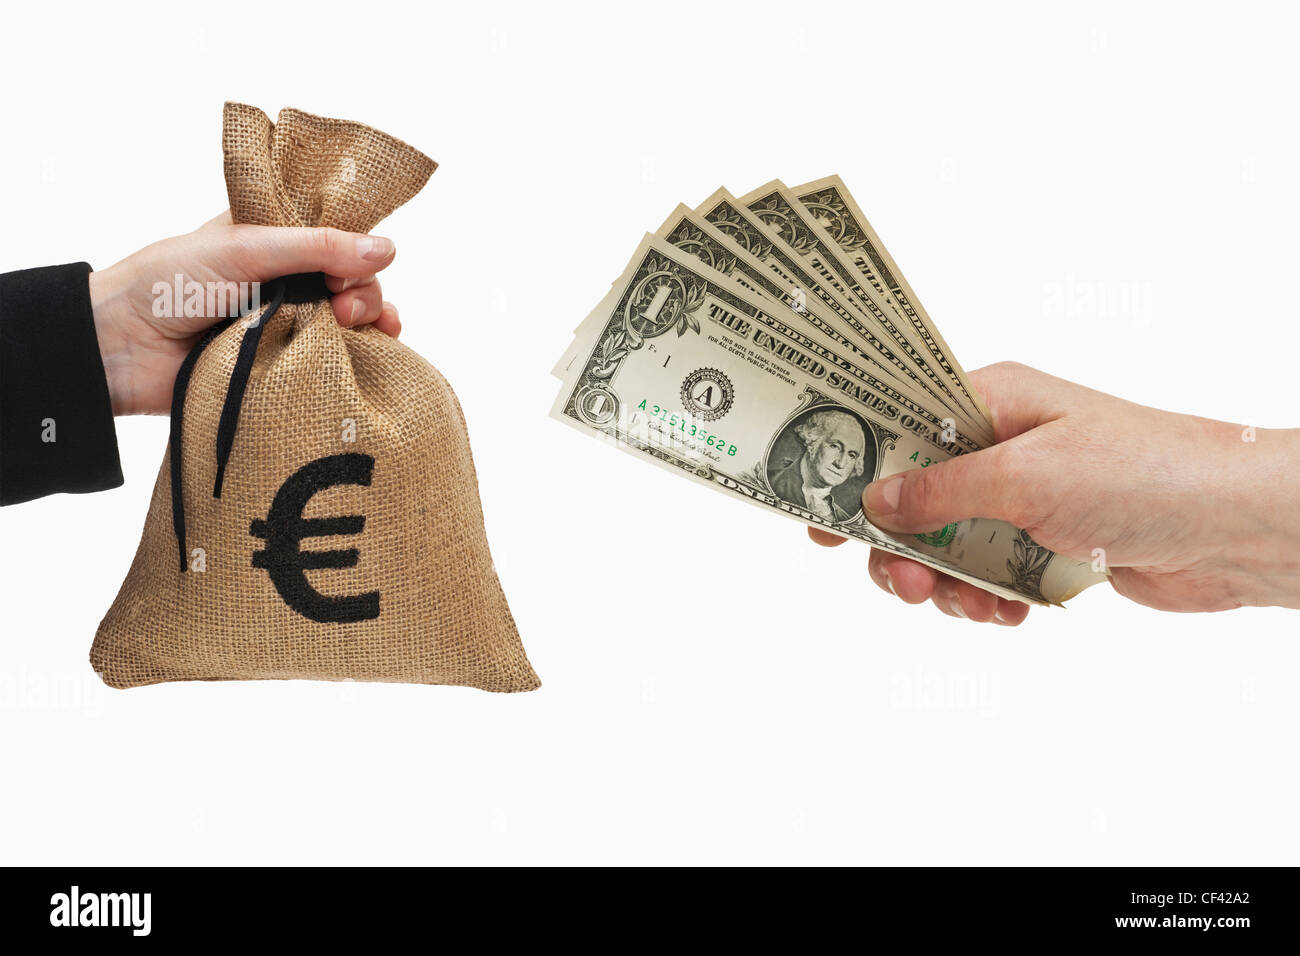 Five 1 U.S. Dollar bills are held in the hand. At the other side a money bag with Euro currency sign held in the - Stock Image